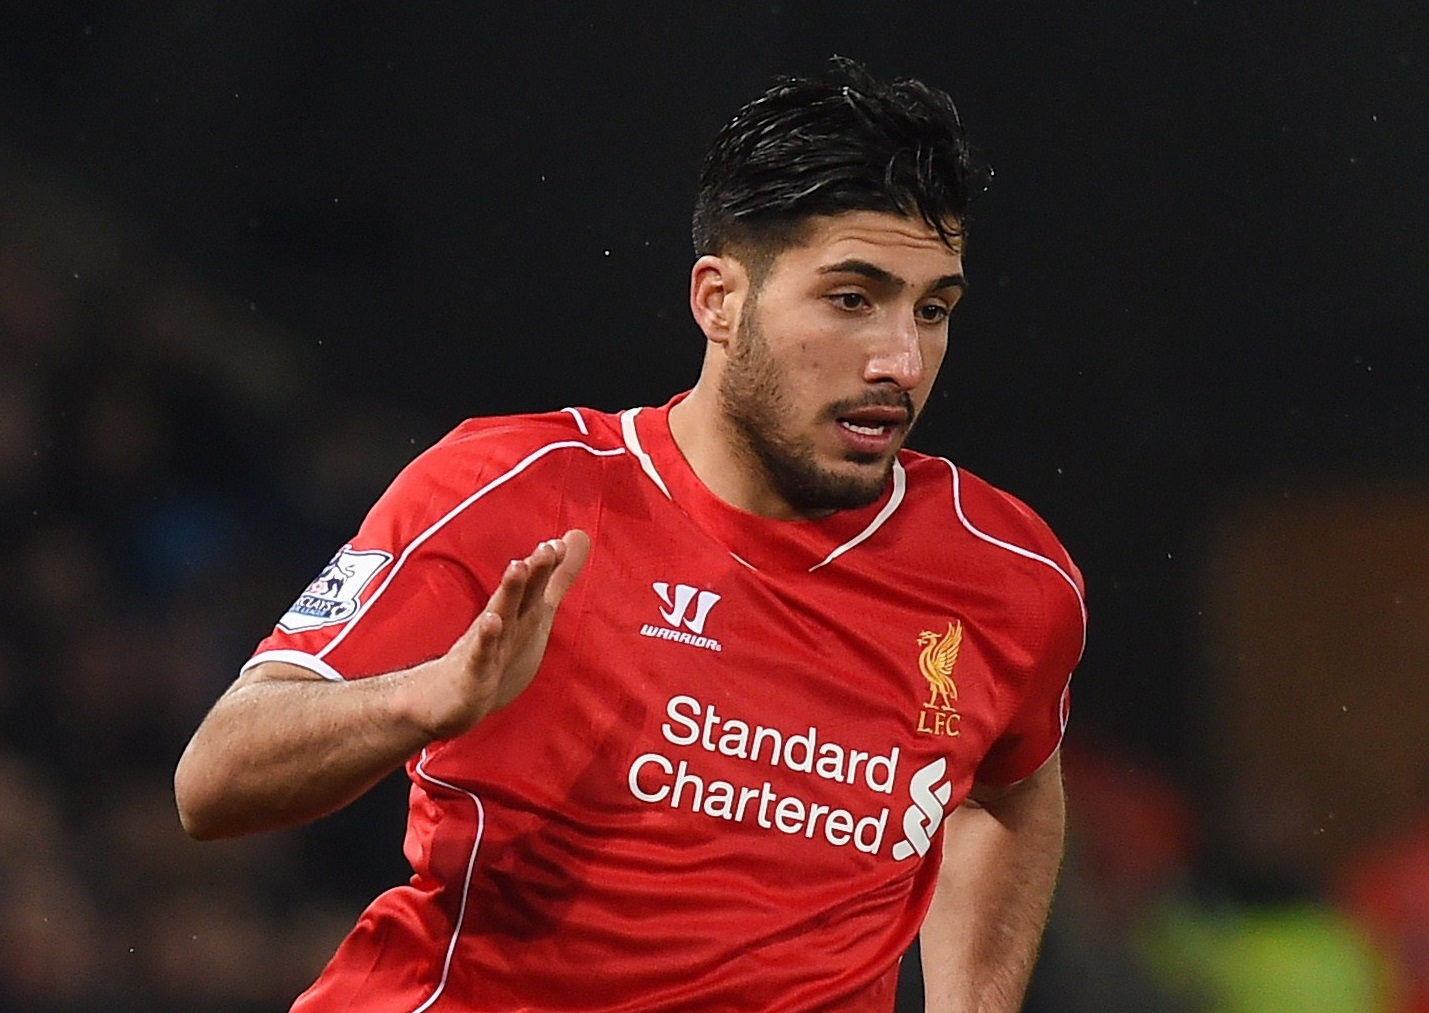 Liverpool star Emre Can in line for Germany call up after ...